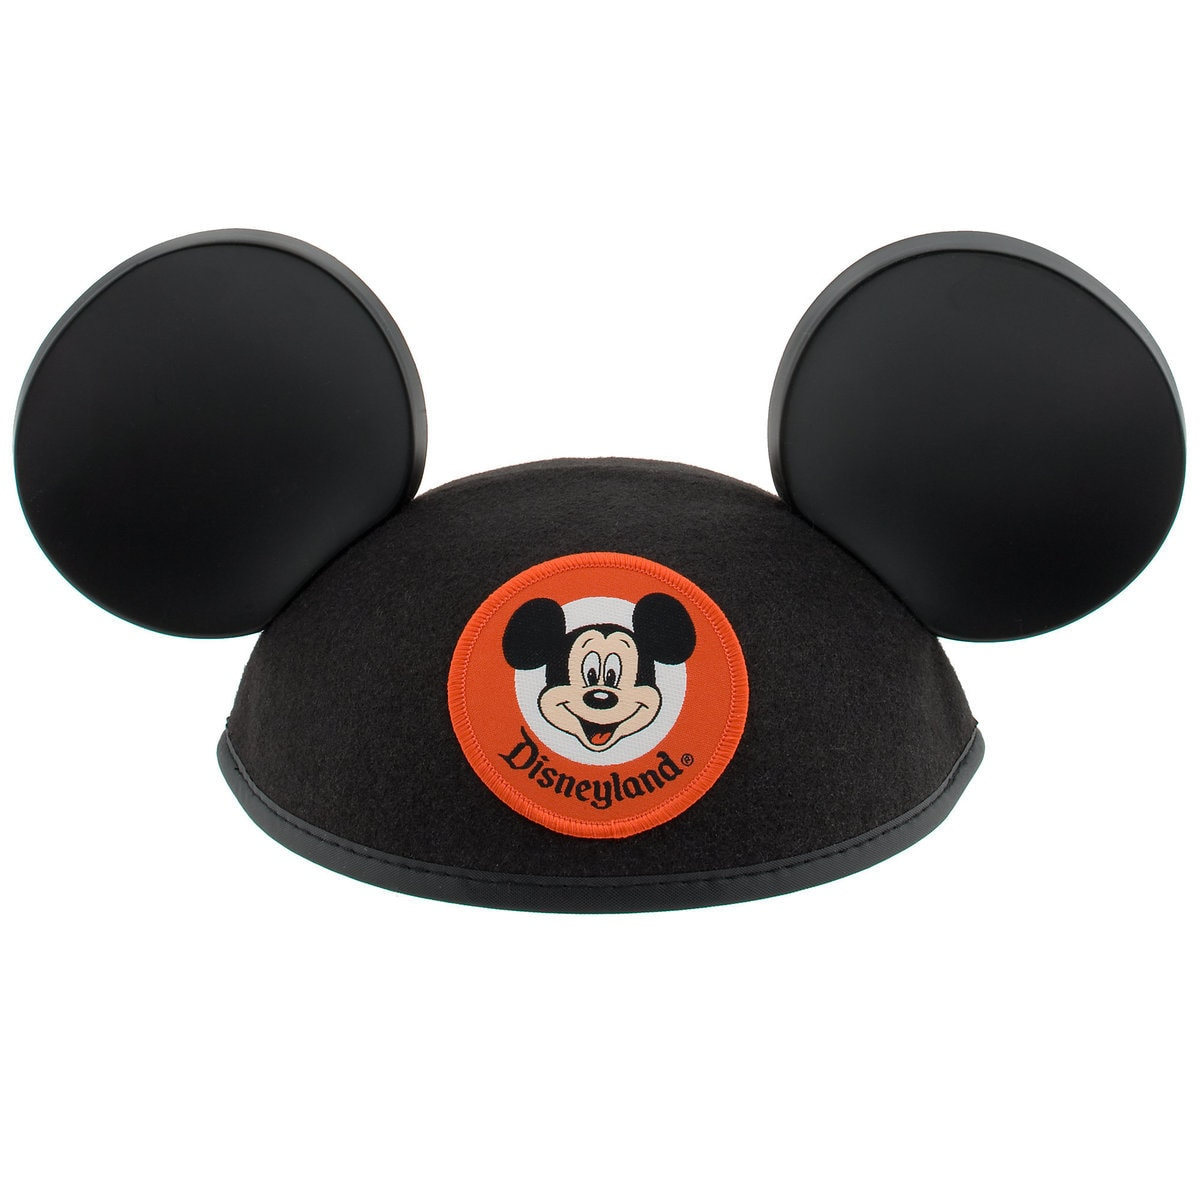 2e1311f8323f8 Product Image of Mickey Mouse Ear Hat For Adults - Disneyland -  Personalizable   1